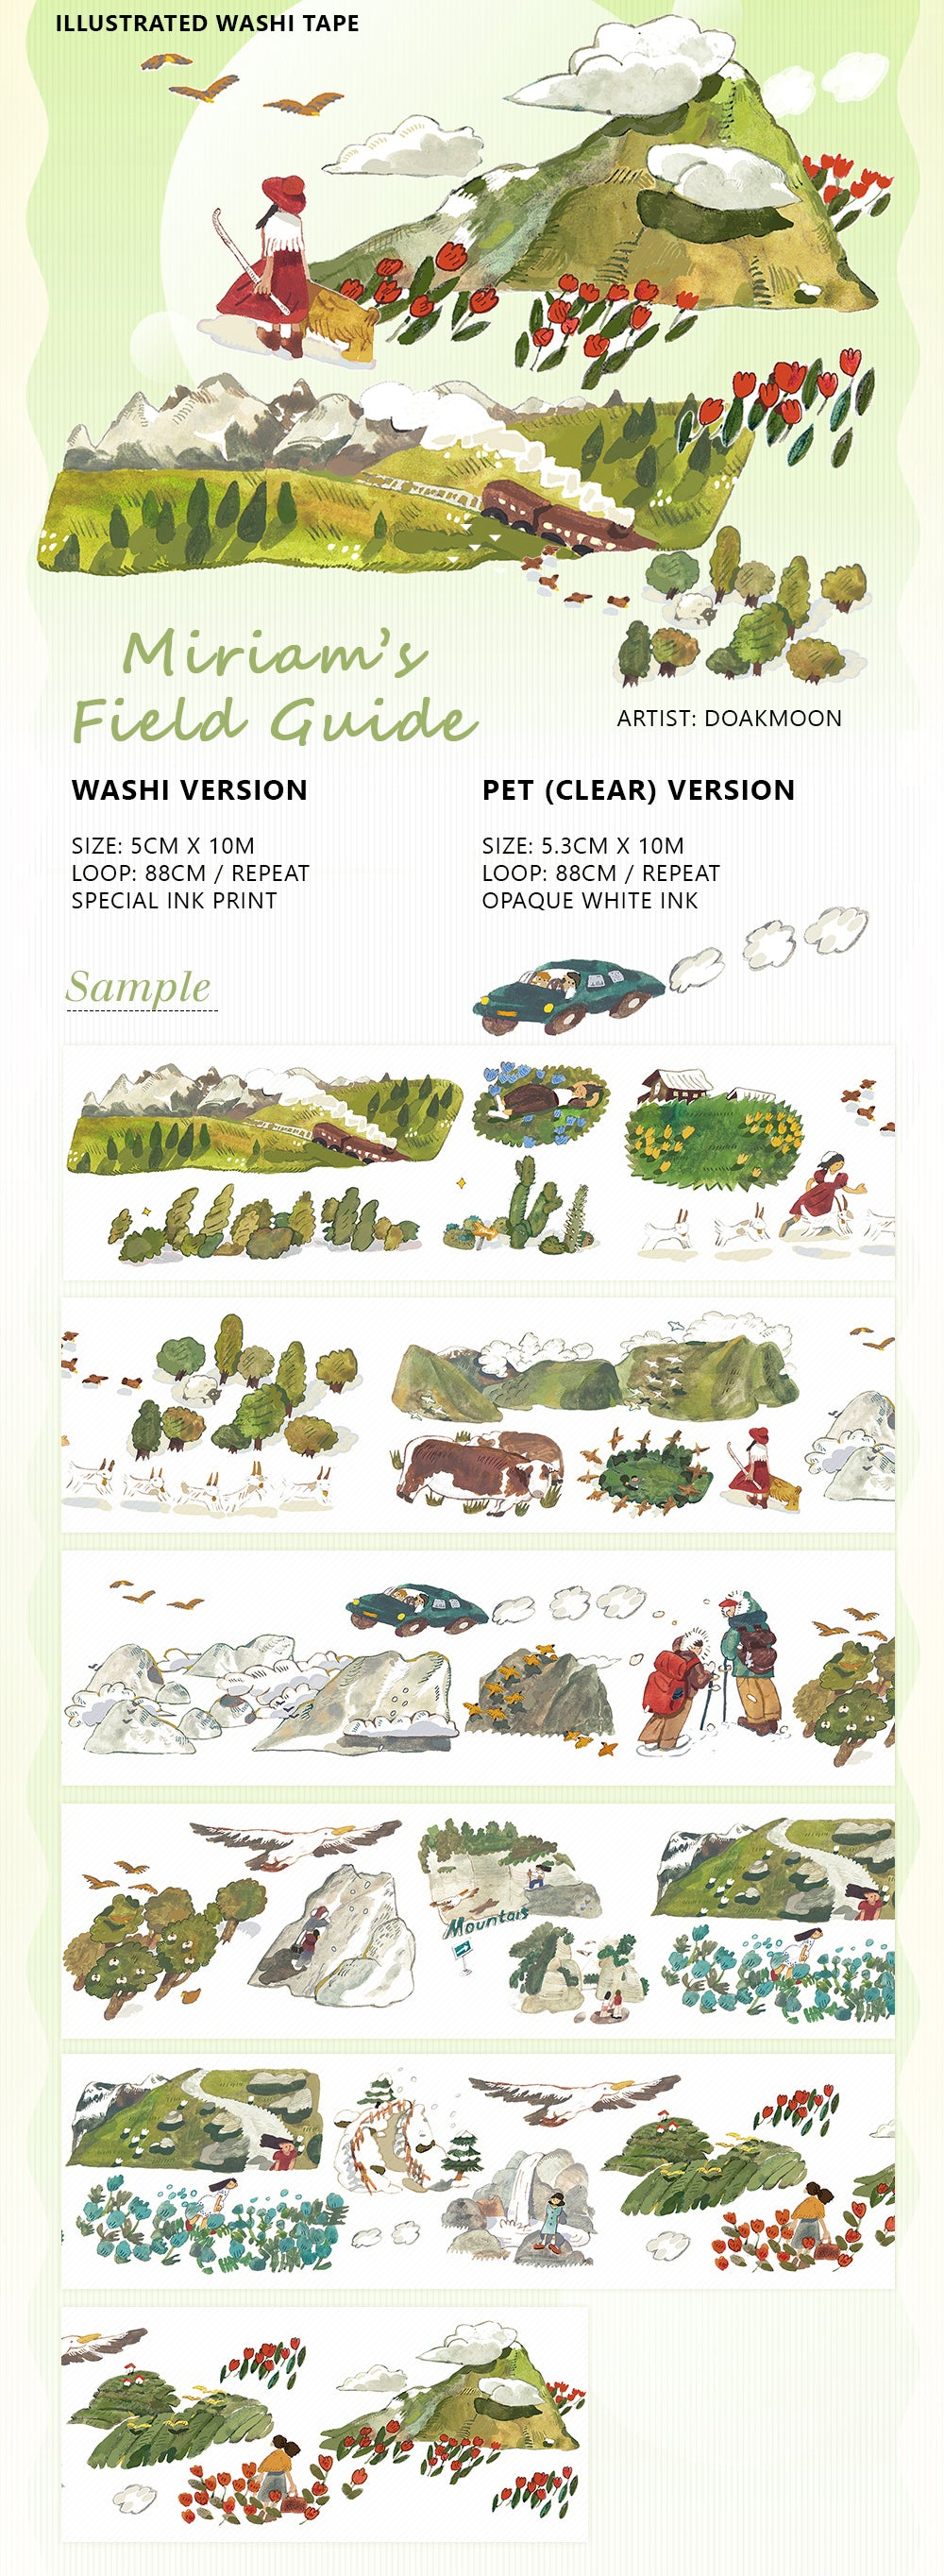 Falling Land Studio Washi Tape: Miriam's Field Guide